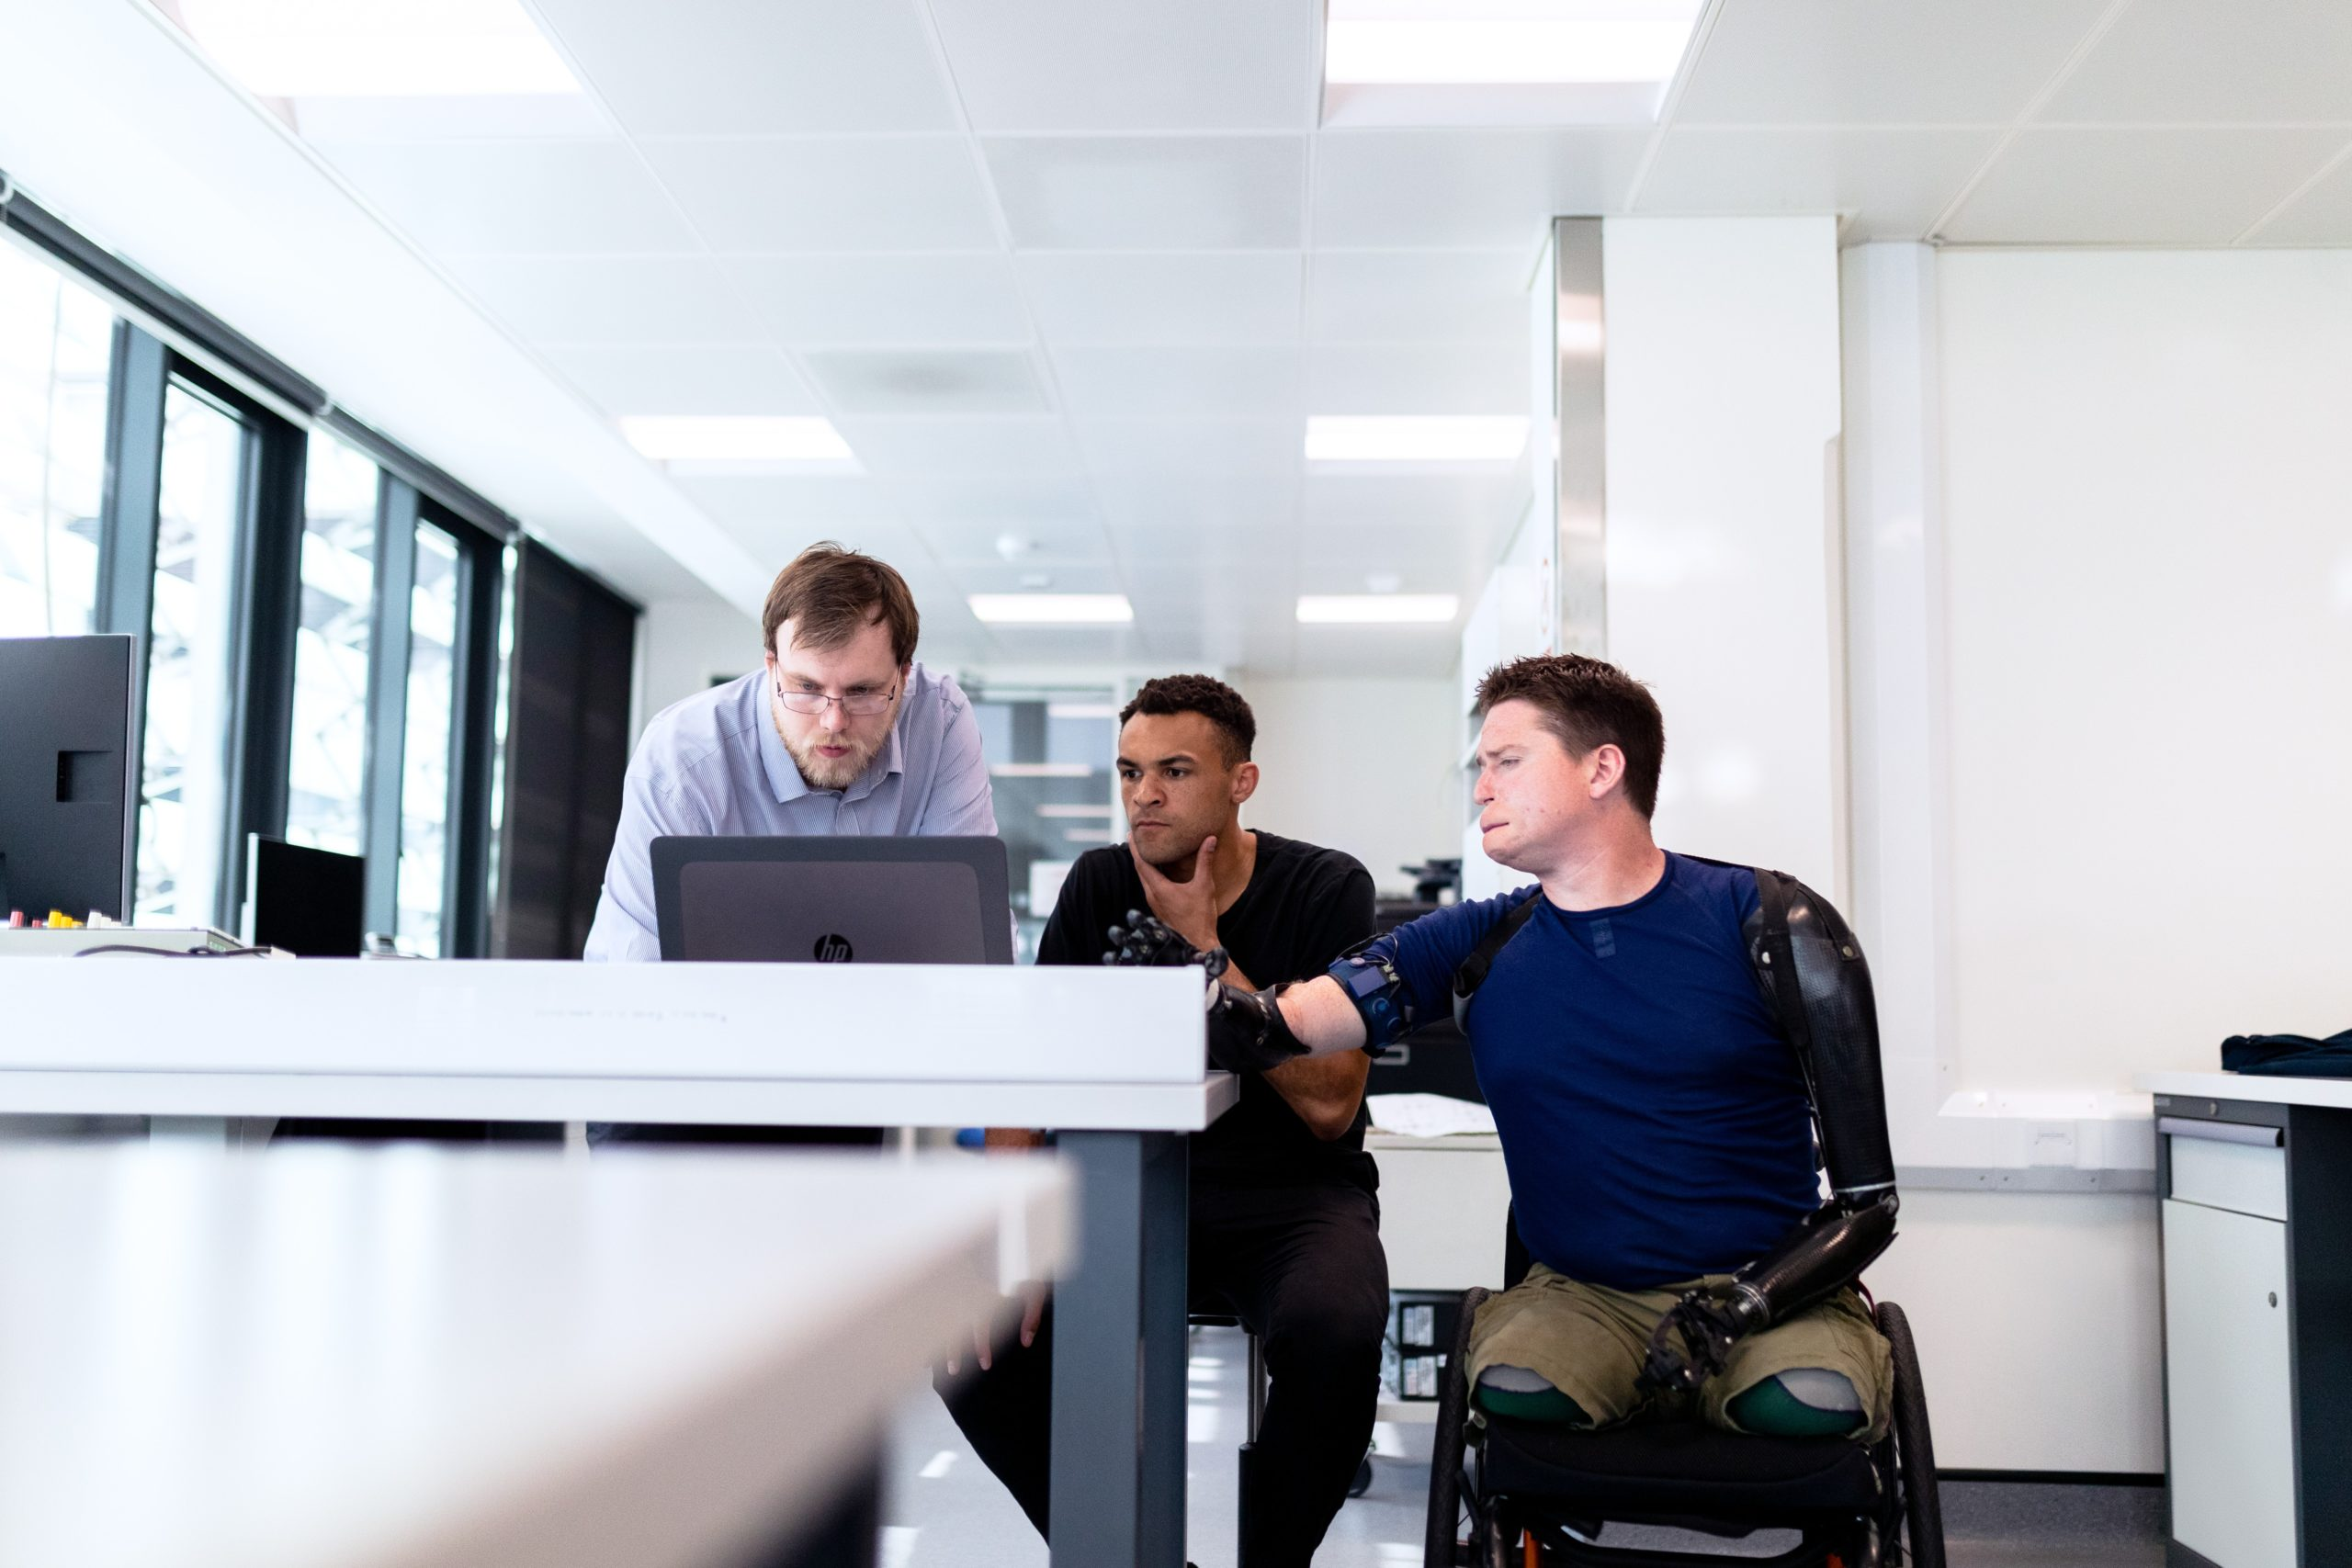 Establishing Service-Connection For Service-Related Disabilities